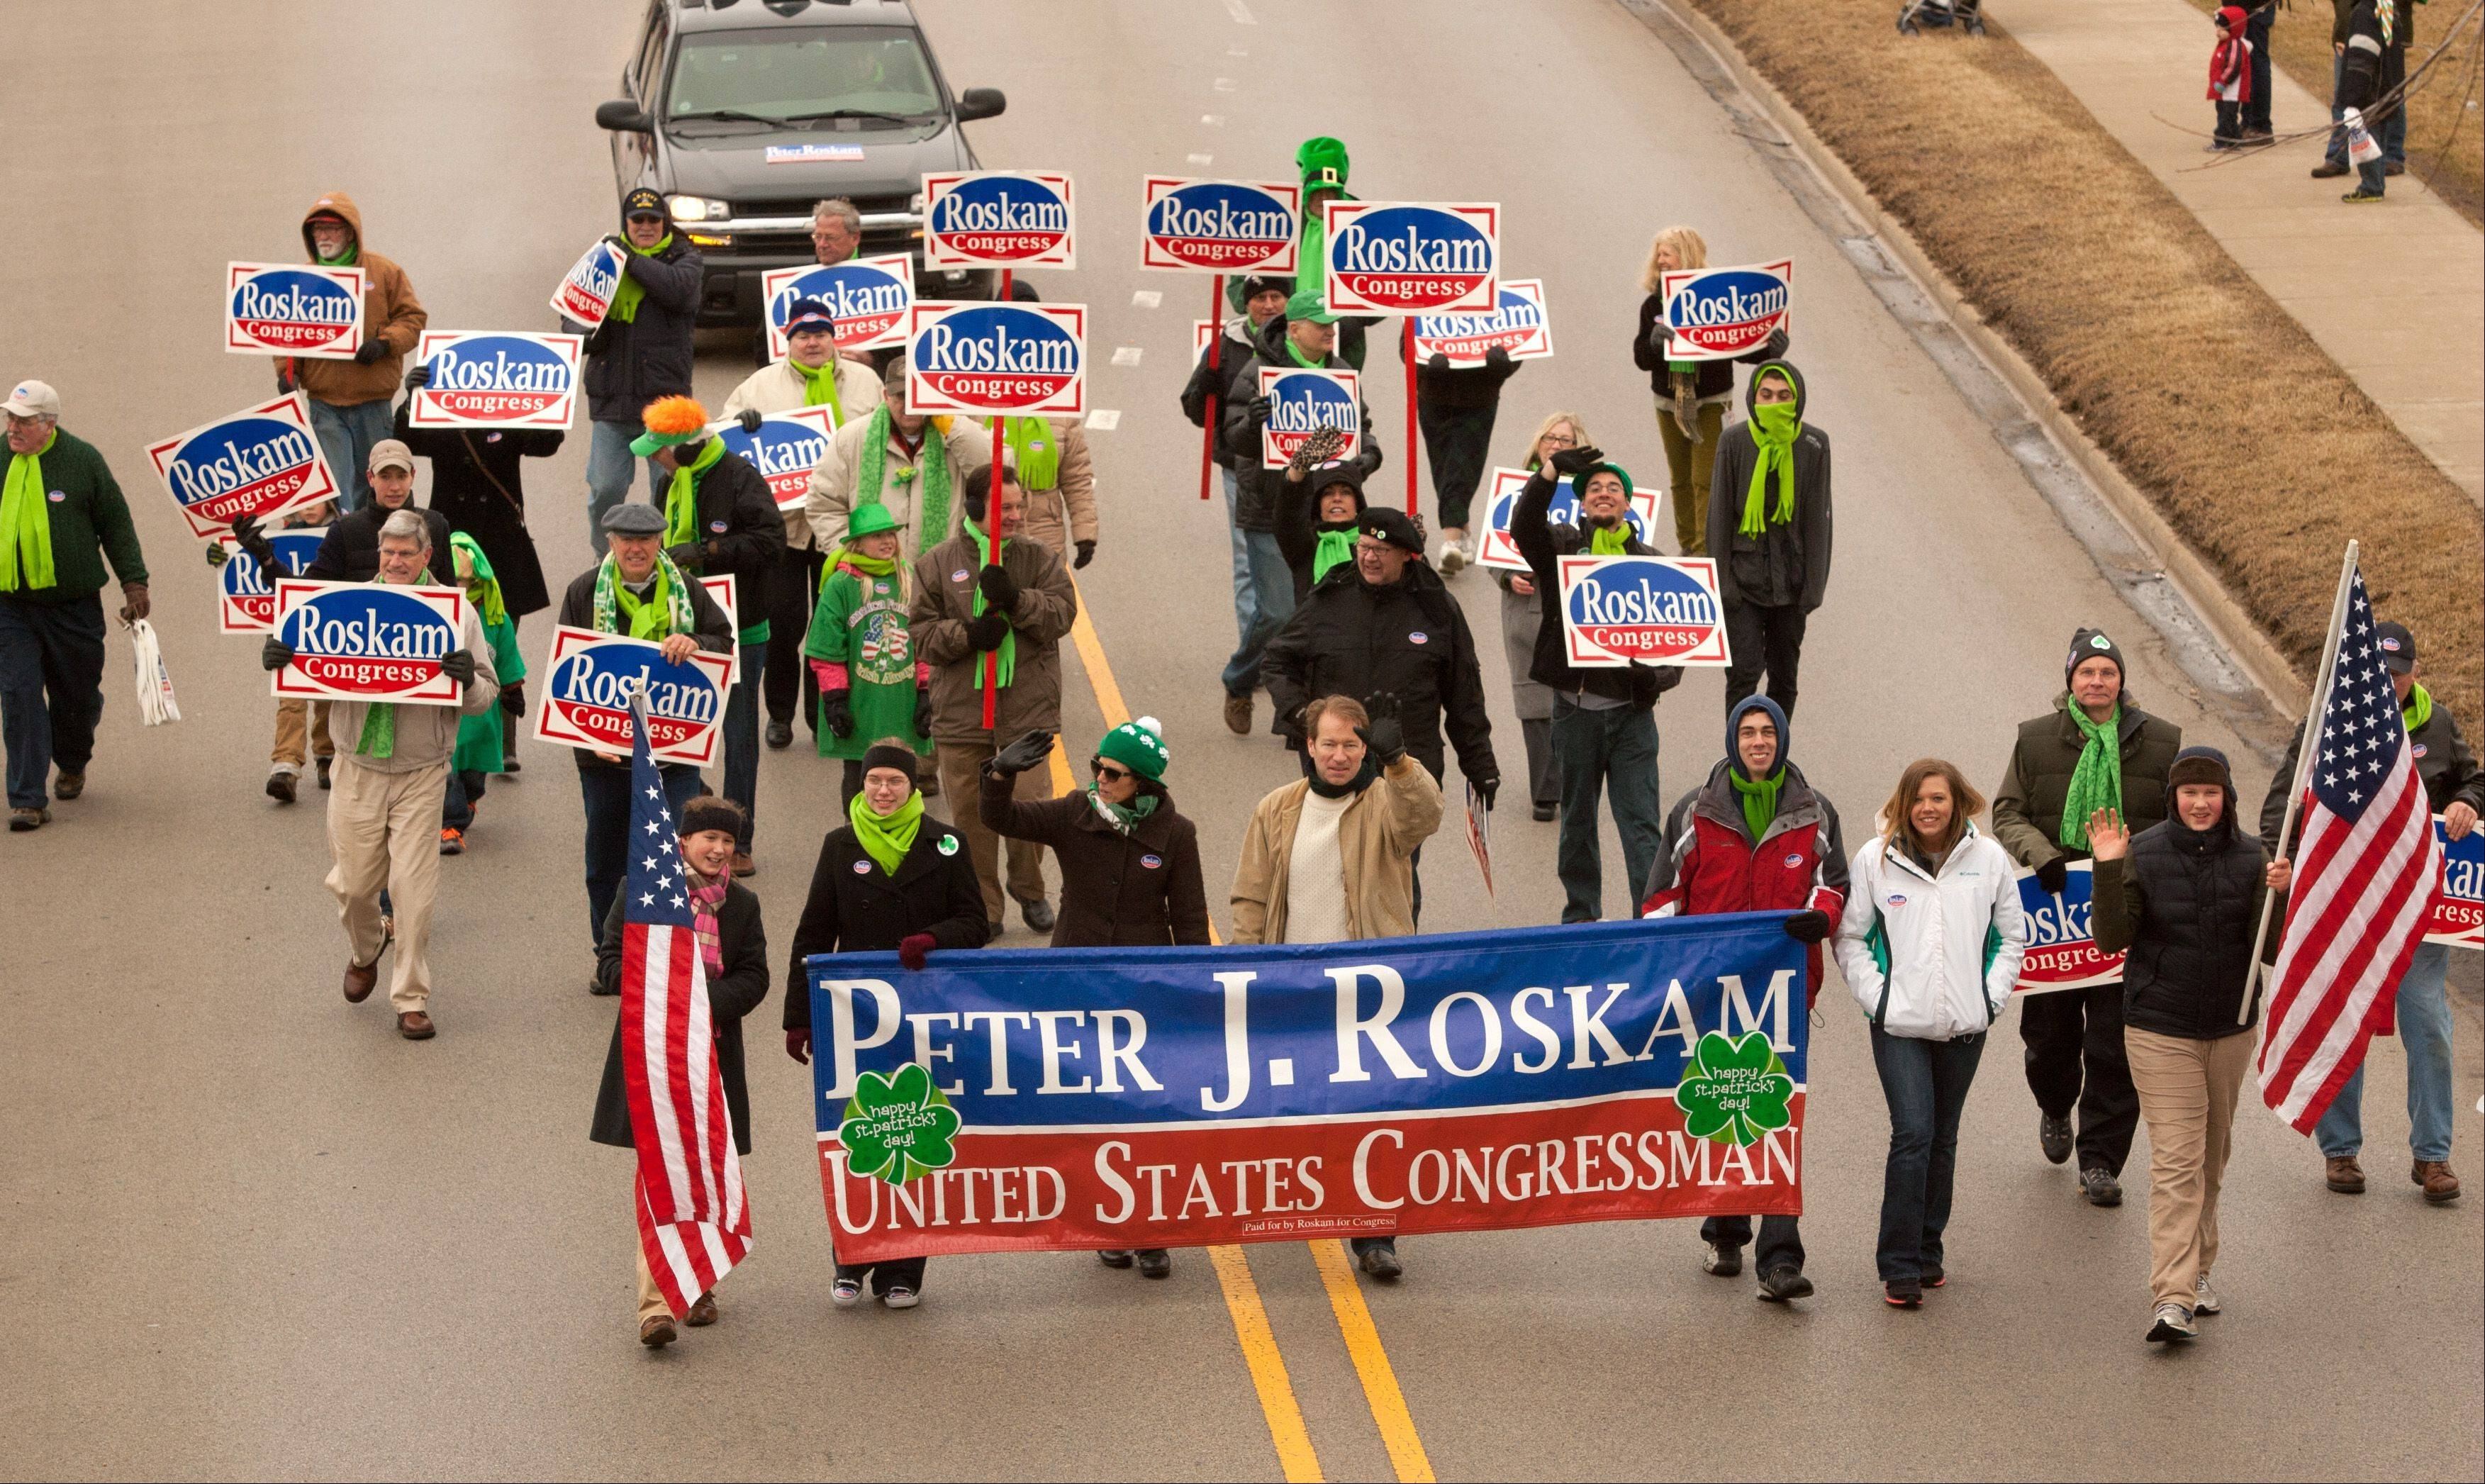 U.S. Rep. Peter Roskam marches Saturday in the Naperville's St. Patrick's Day parade.